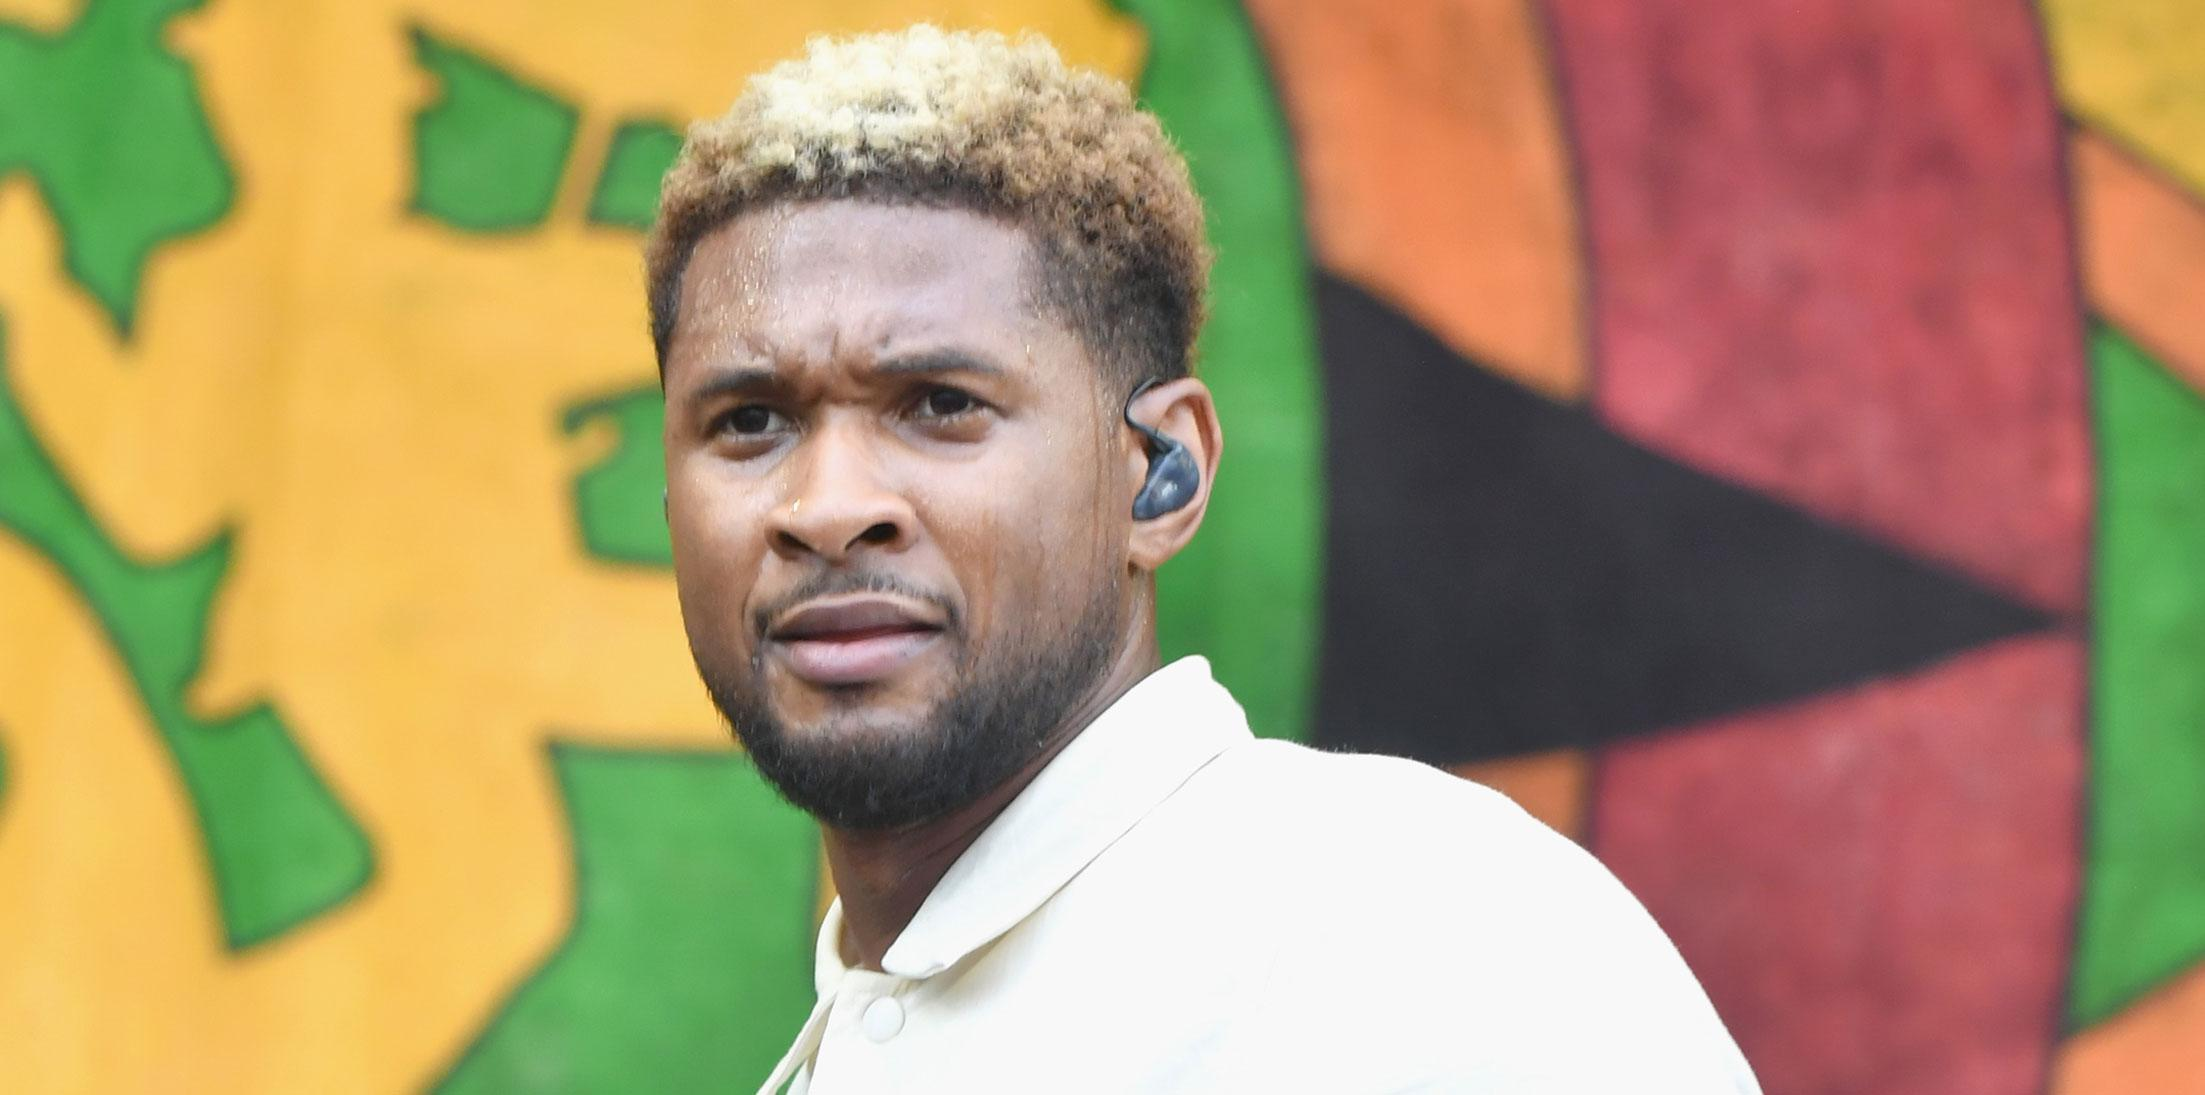 Usher herpes lawsuit man suing after infection